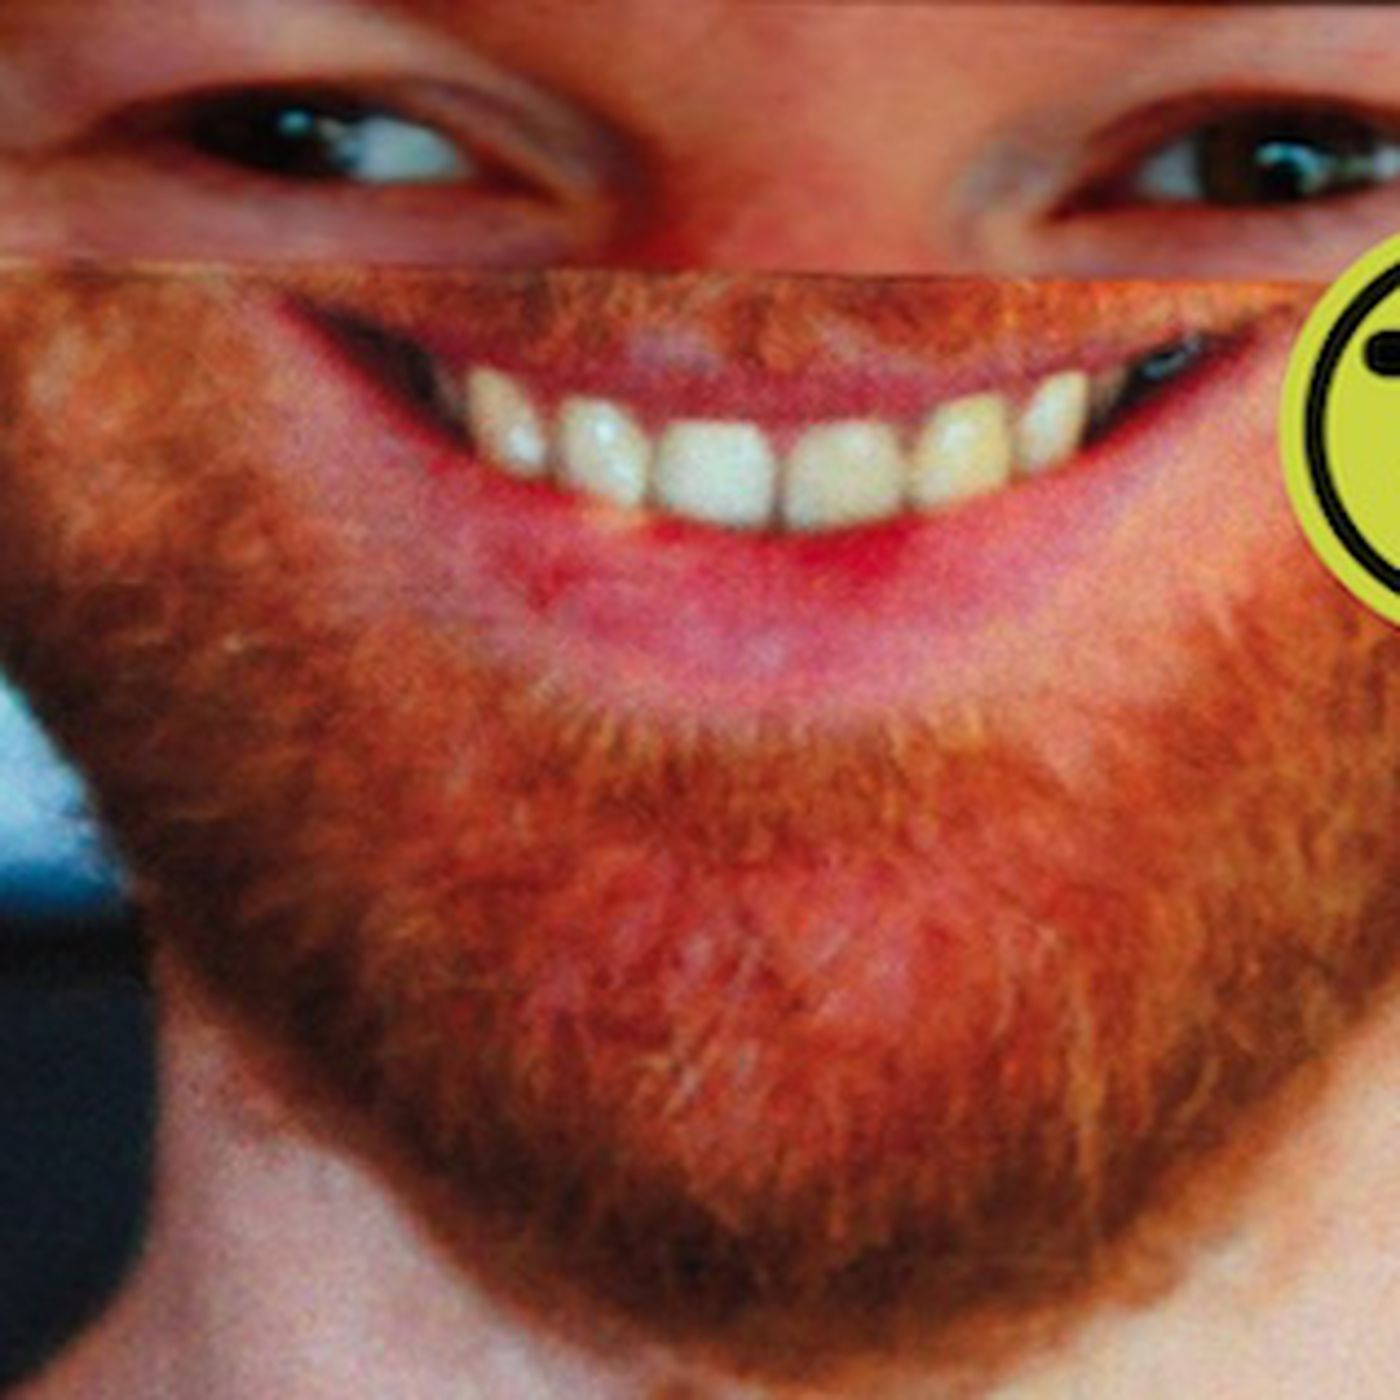 Aphex Twin returns with 'SYRO' on September 23rd - The Verge